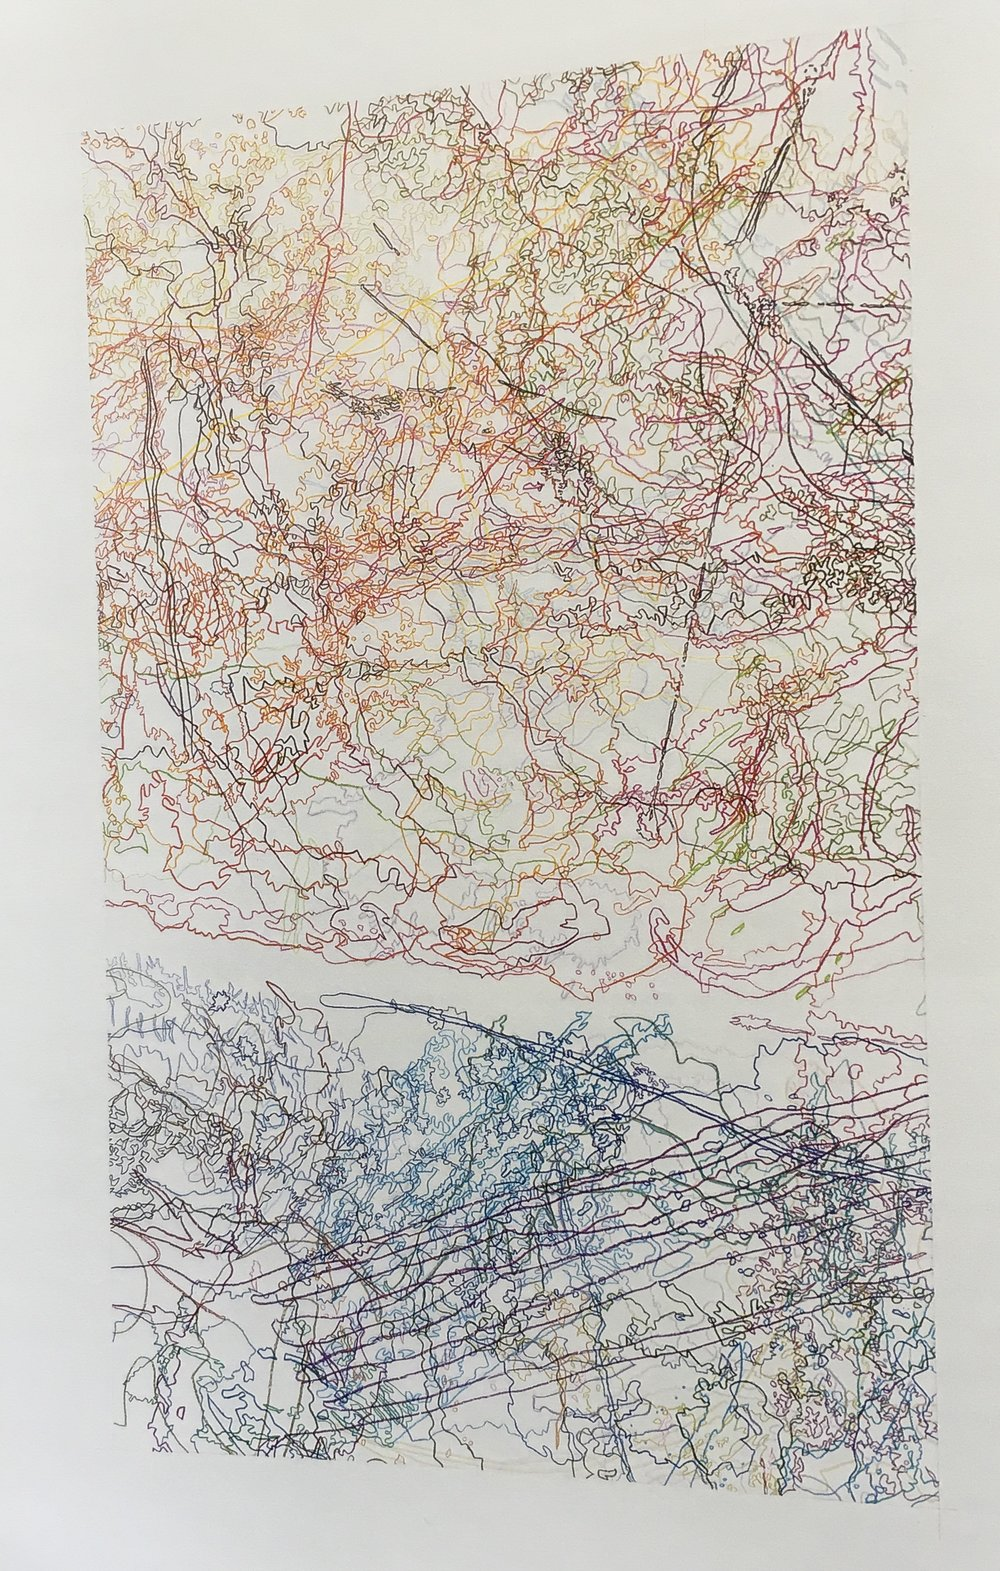 #238 Drawing (Tracings up to the L.A. River placed in the Clark Telescope Dome, Lowell Observatory, Flagstaff, AZ)  by Ingrid Calame. 2006. Colored pencil on trace Mylar; 50 x 34 inches. P 110.